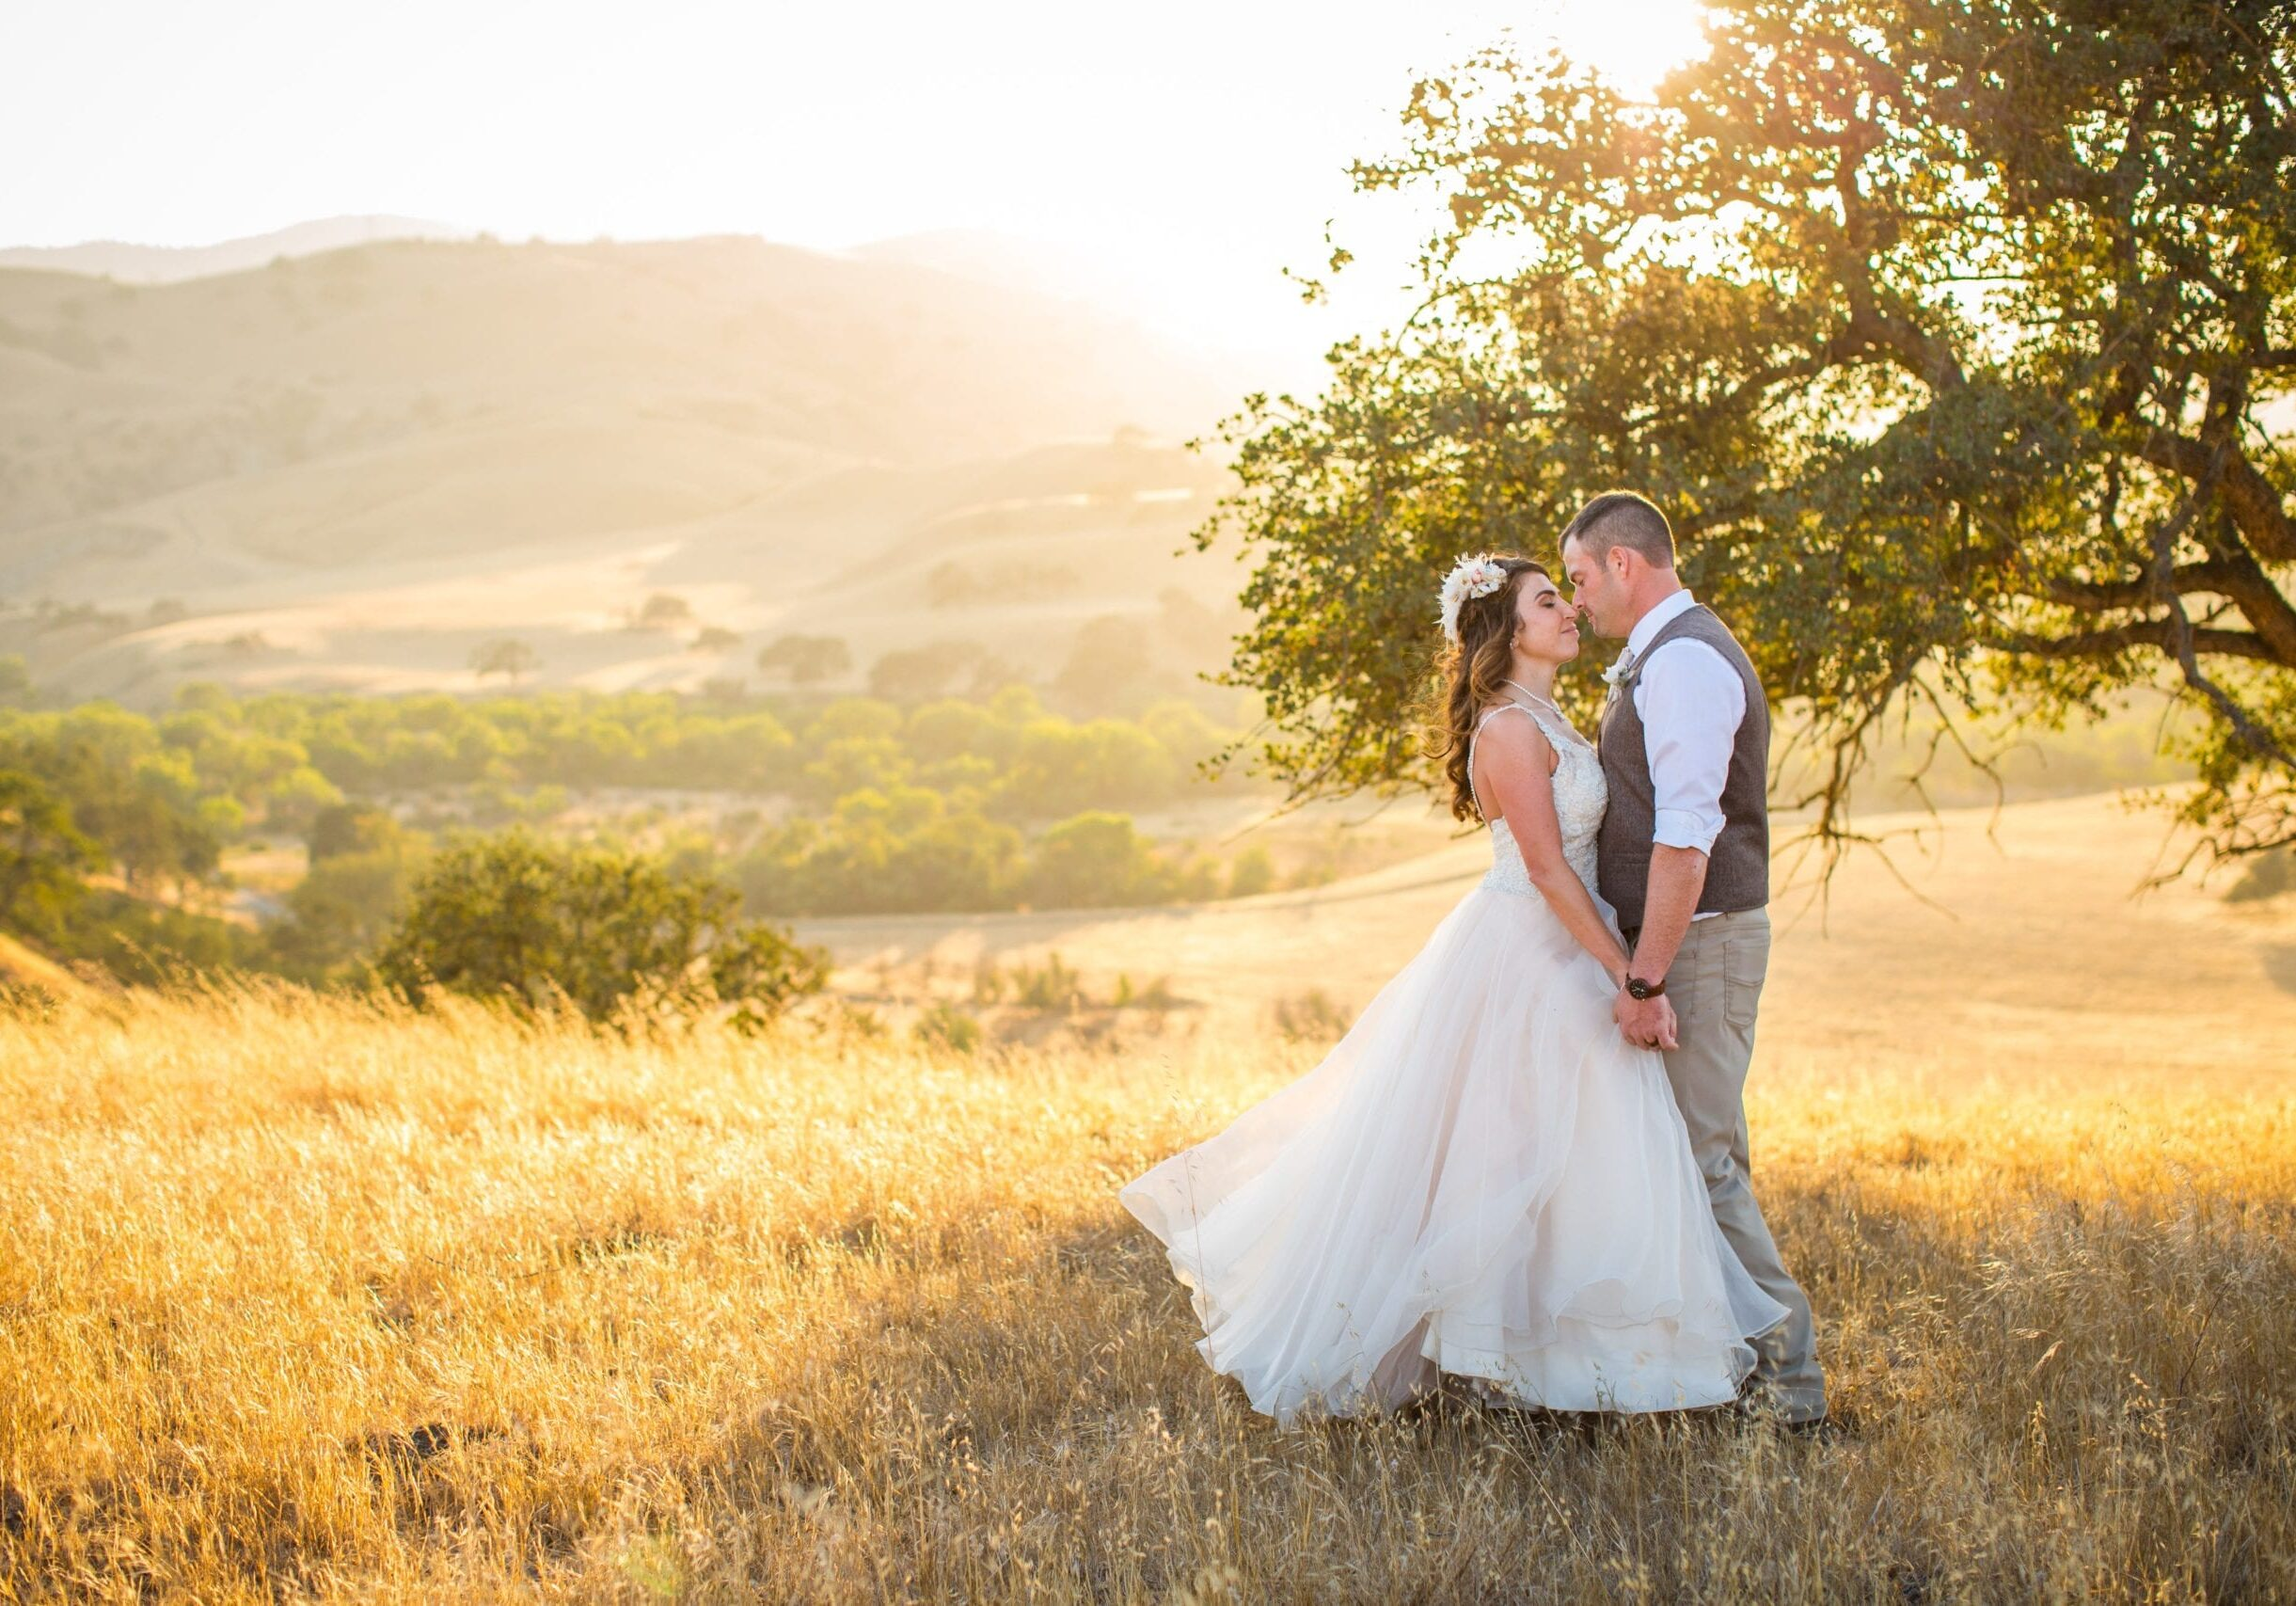 Keith and Alicia wedding by photographer Amy Leist